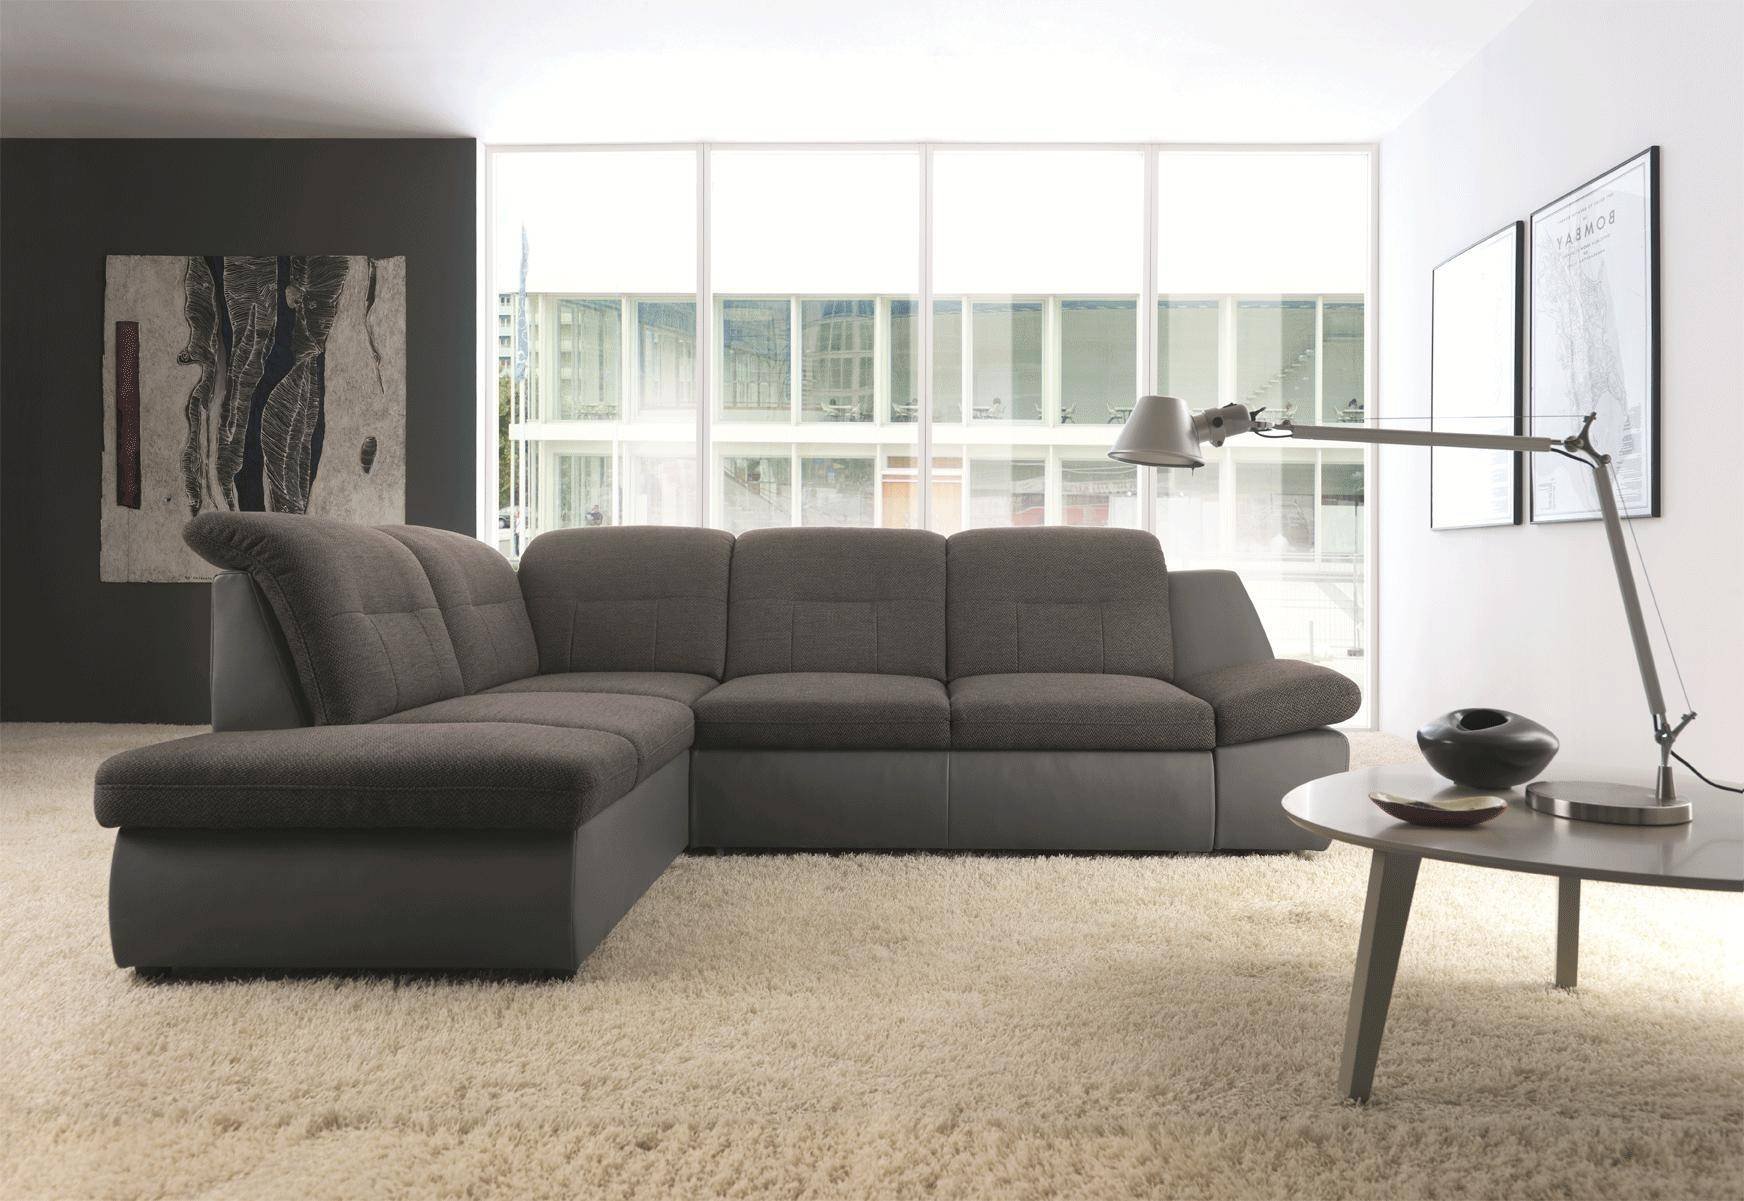 ESF Credo Chic Brown Fabric/Leather Sectional Sofa Bed w/Storage ...